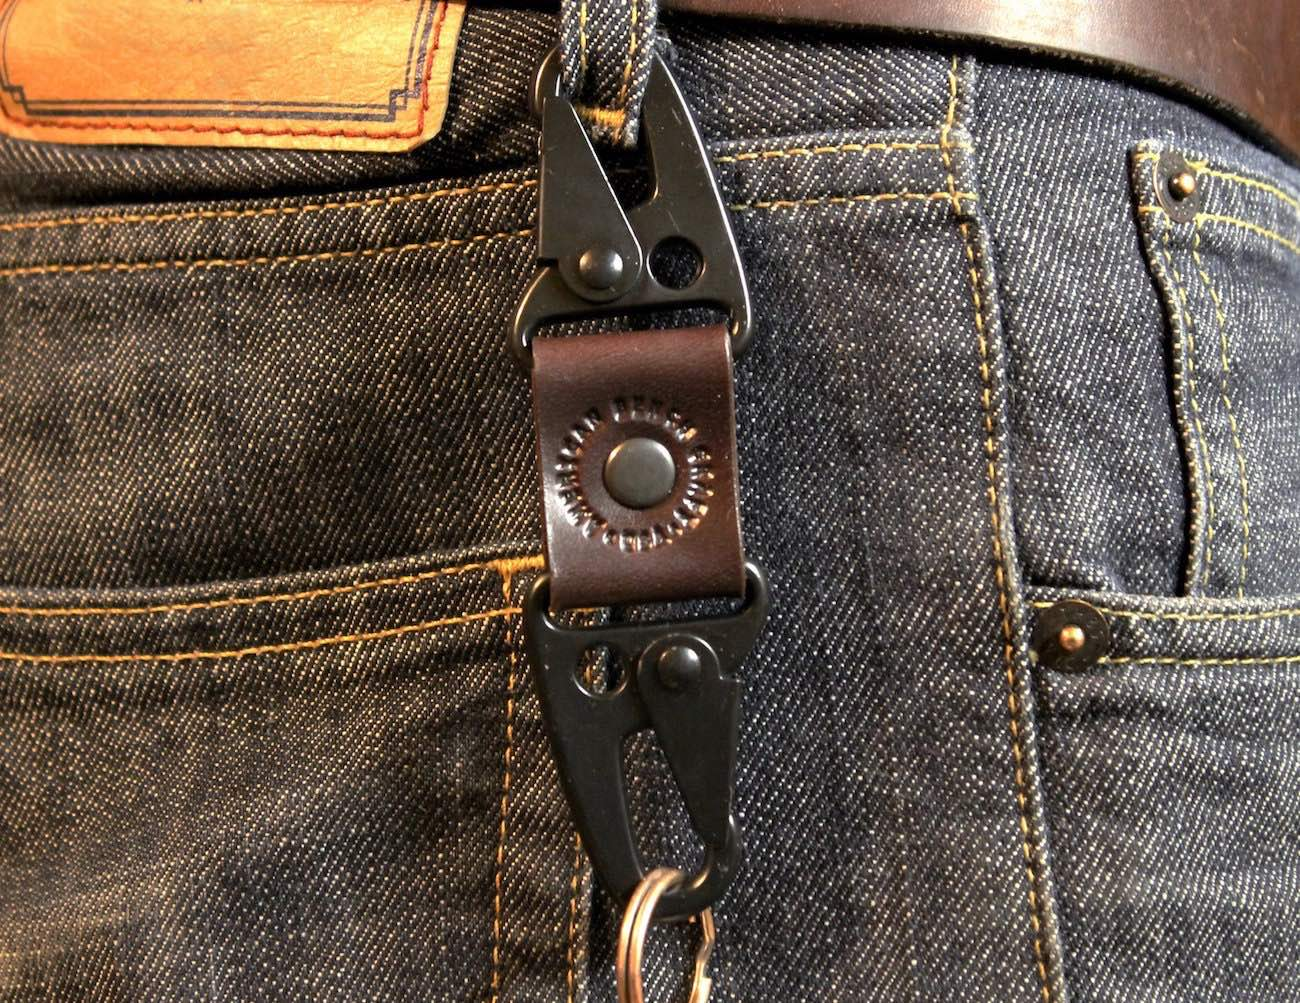 Dual Snap Key Fob by American Bench Craft